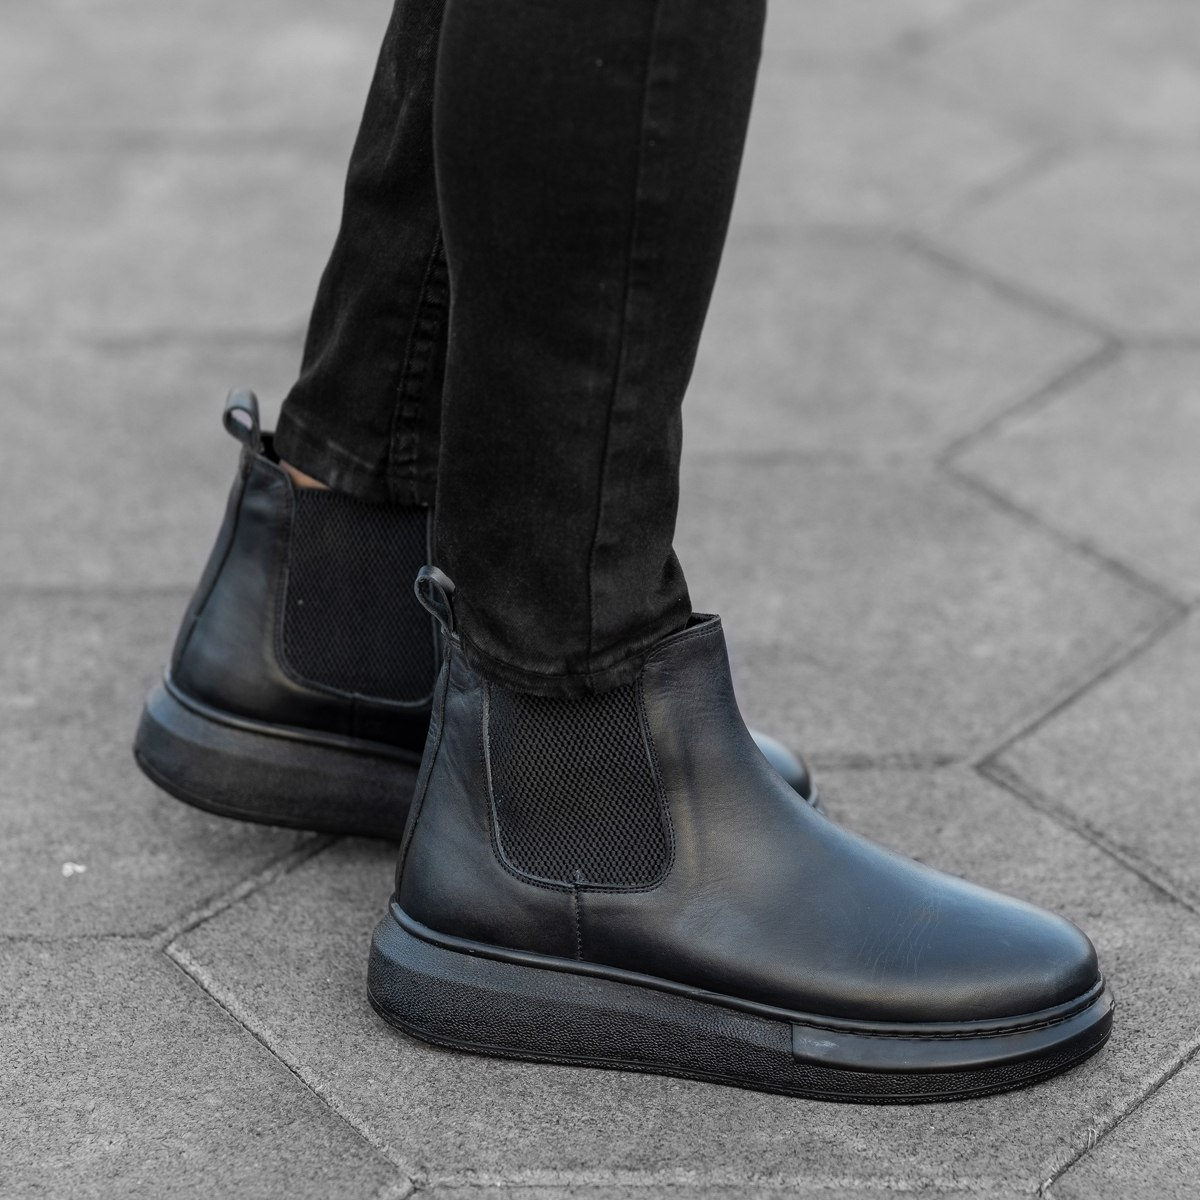 Genuine-Leather Hype Sole Chelsea Boots In Black Mv Premium Brand - 1